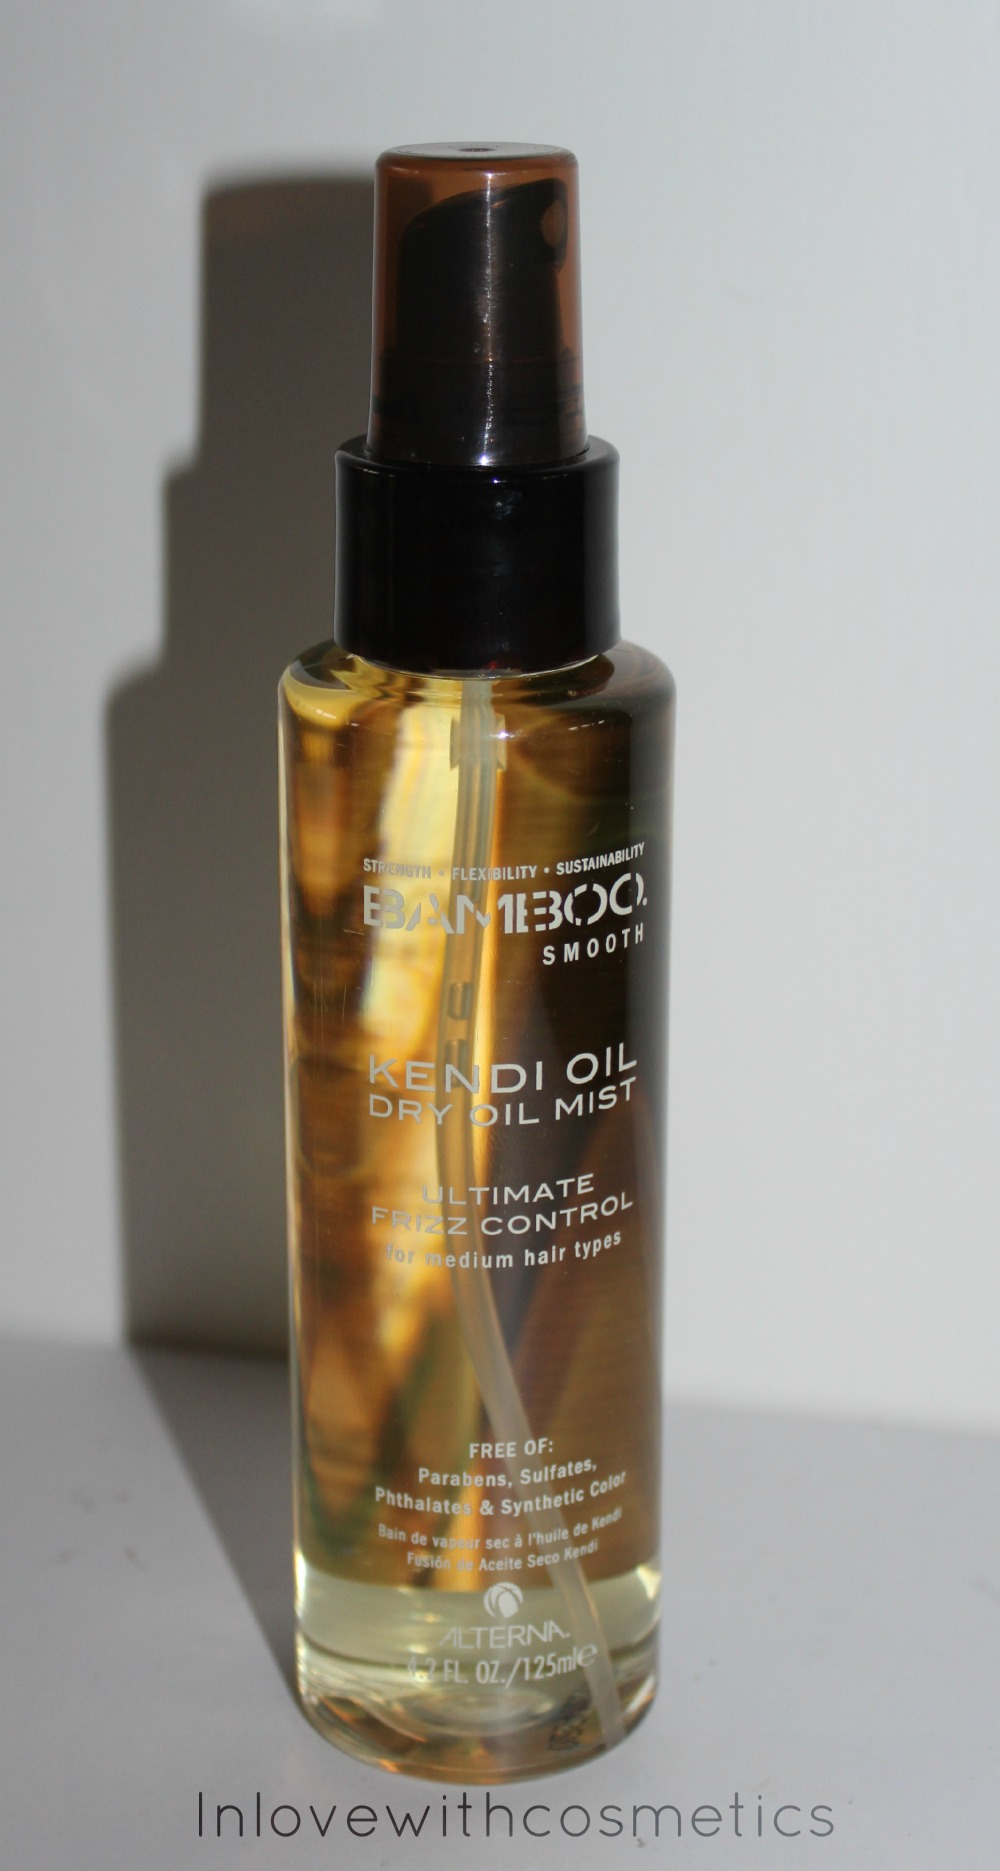 Alterna_Bamboo Smooth Kendi Oil